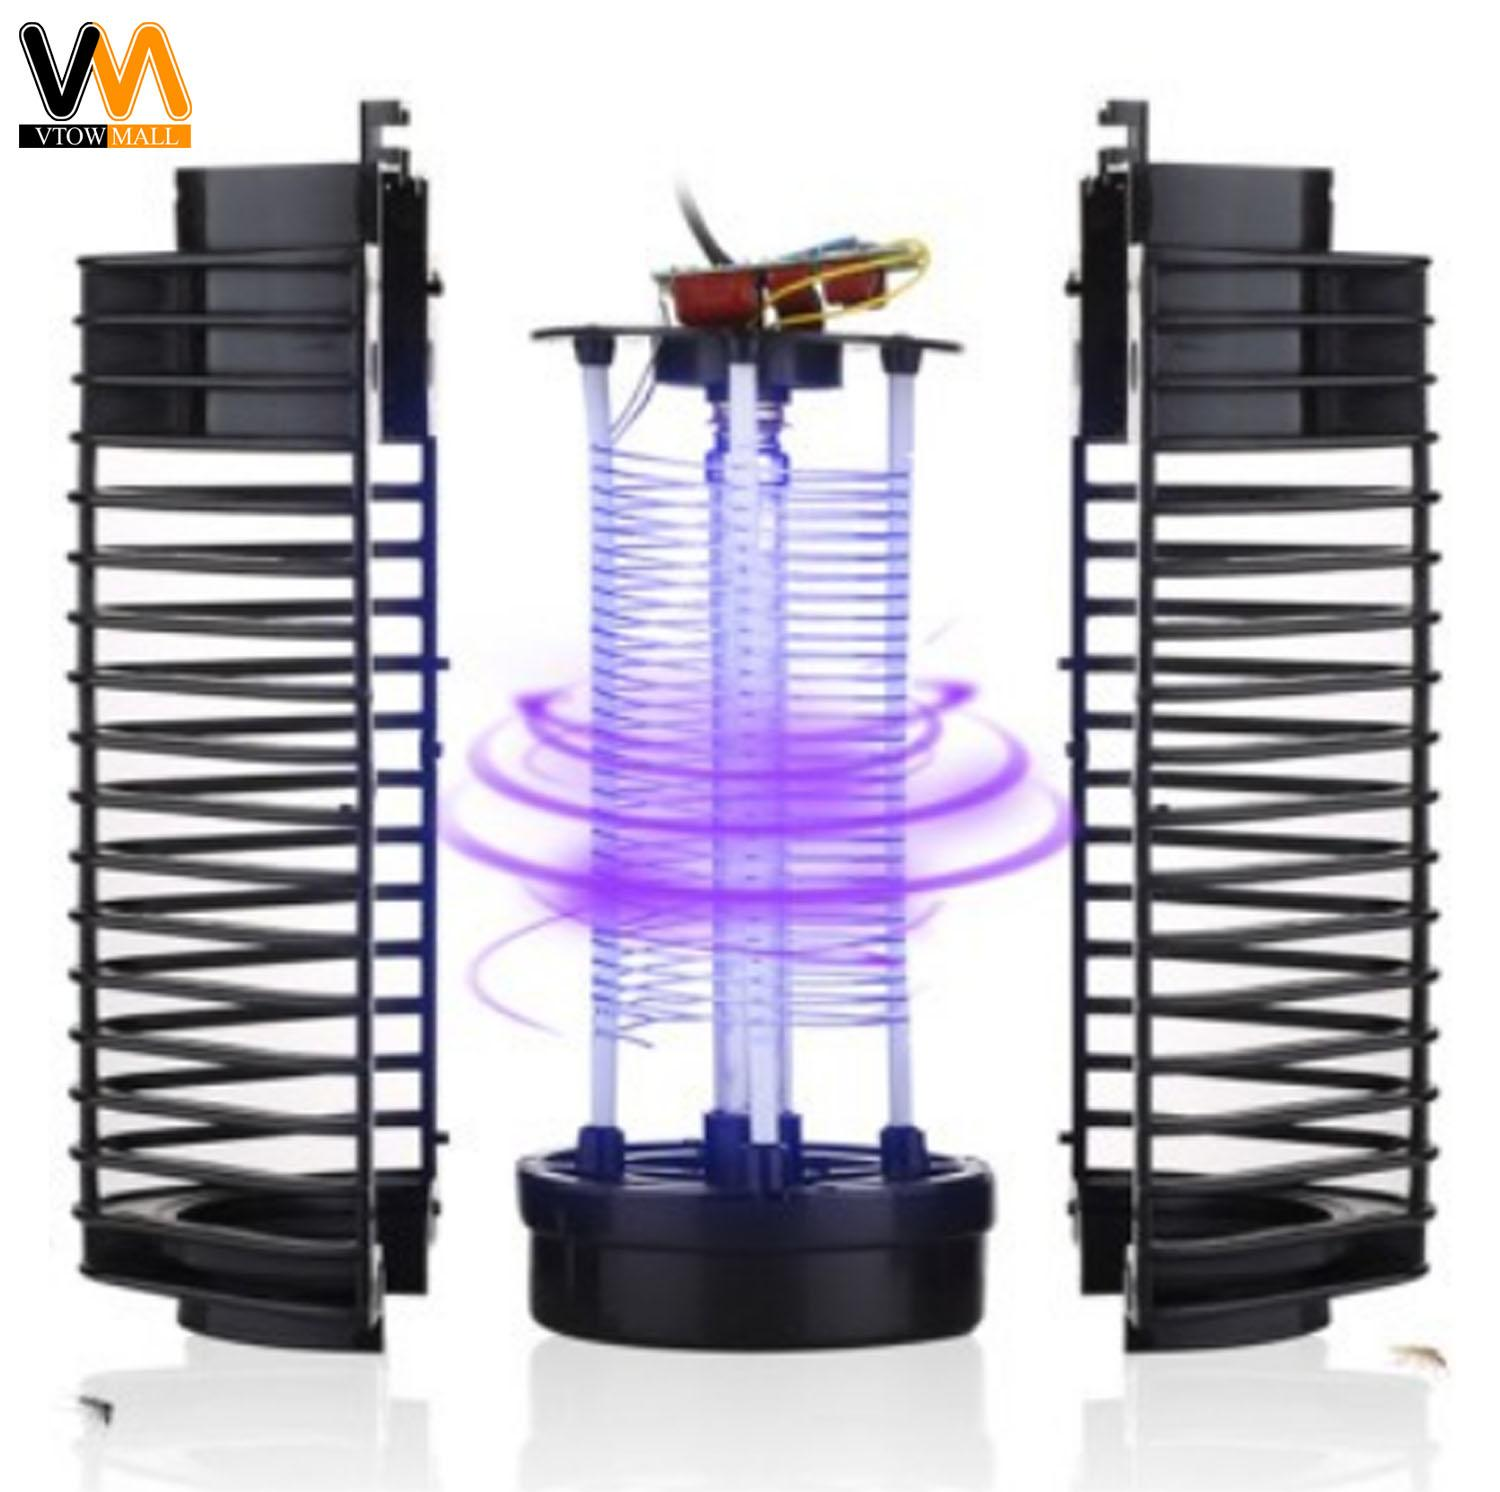 Insect Killer For Sale Zapper Prices Brands Review In Mosquito Lamp Driver Board Circuit Bug Electric Pest